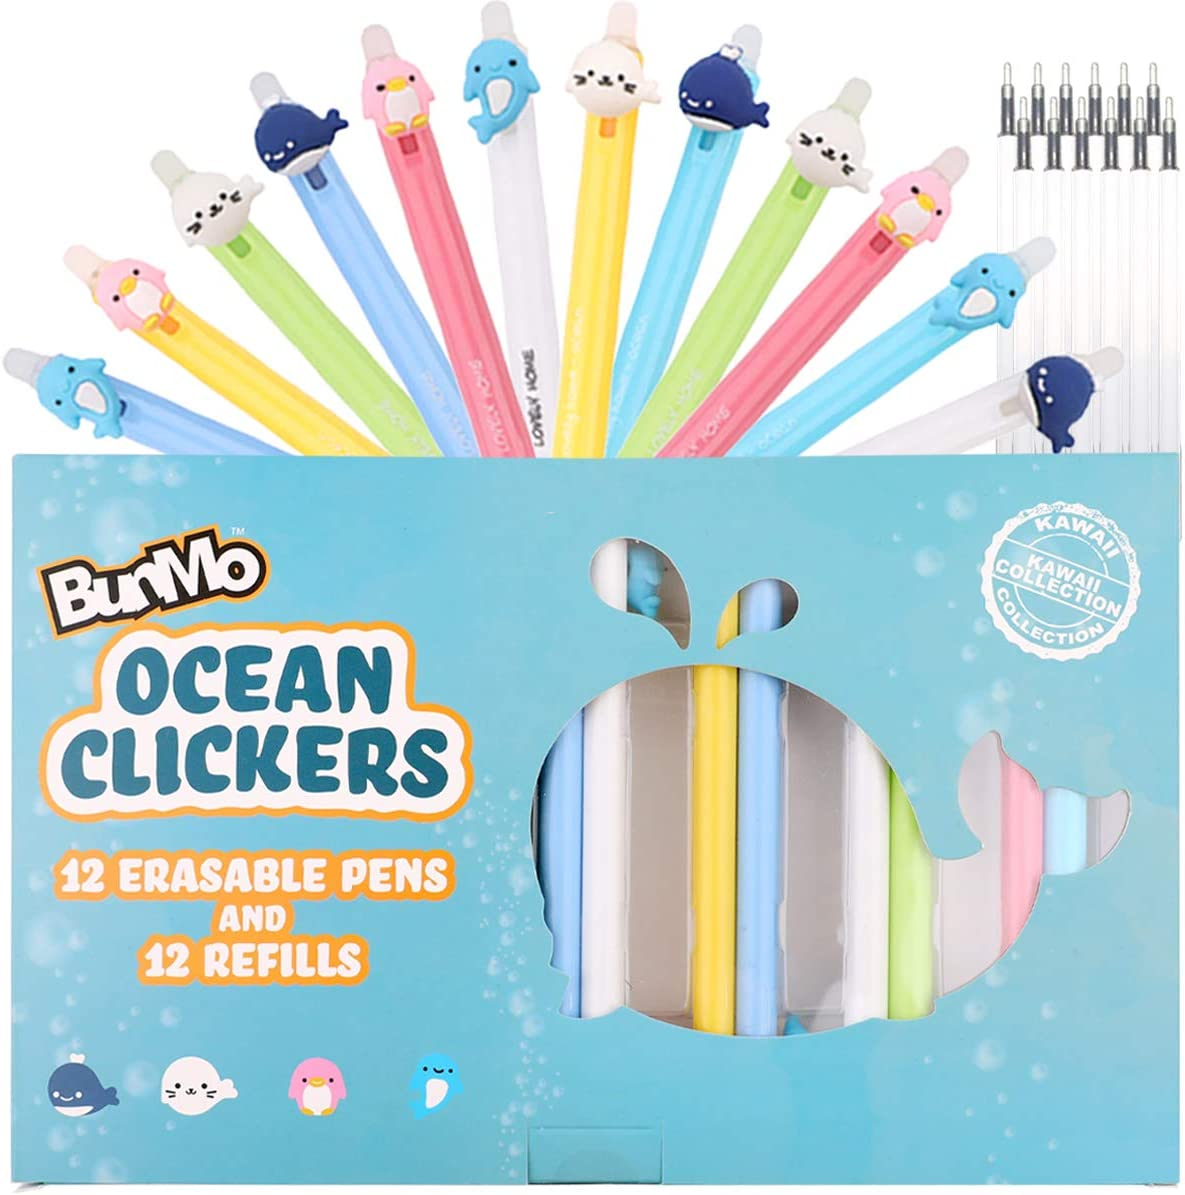 Erasable & Cute Kawaii Retractable Pens - 12 Blue Ink Colored Ballpoint Pens + 12 Black Ink refills - Kawaii Stationary Office School Supplies